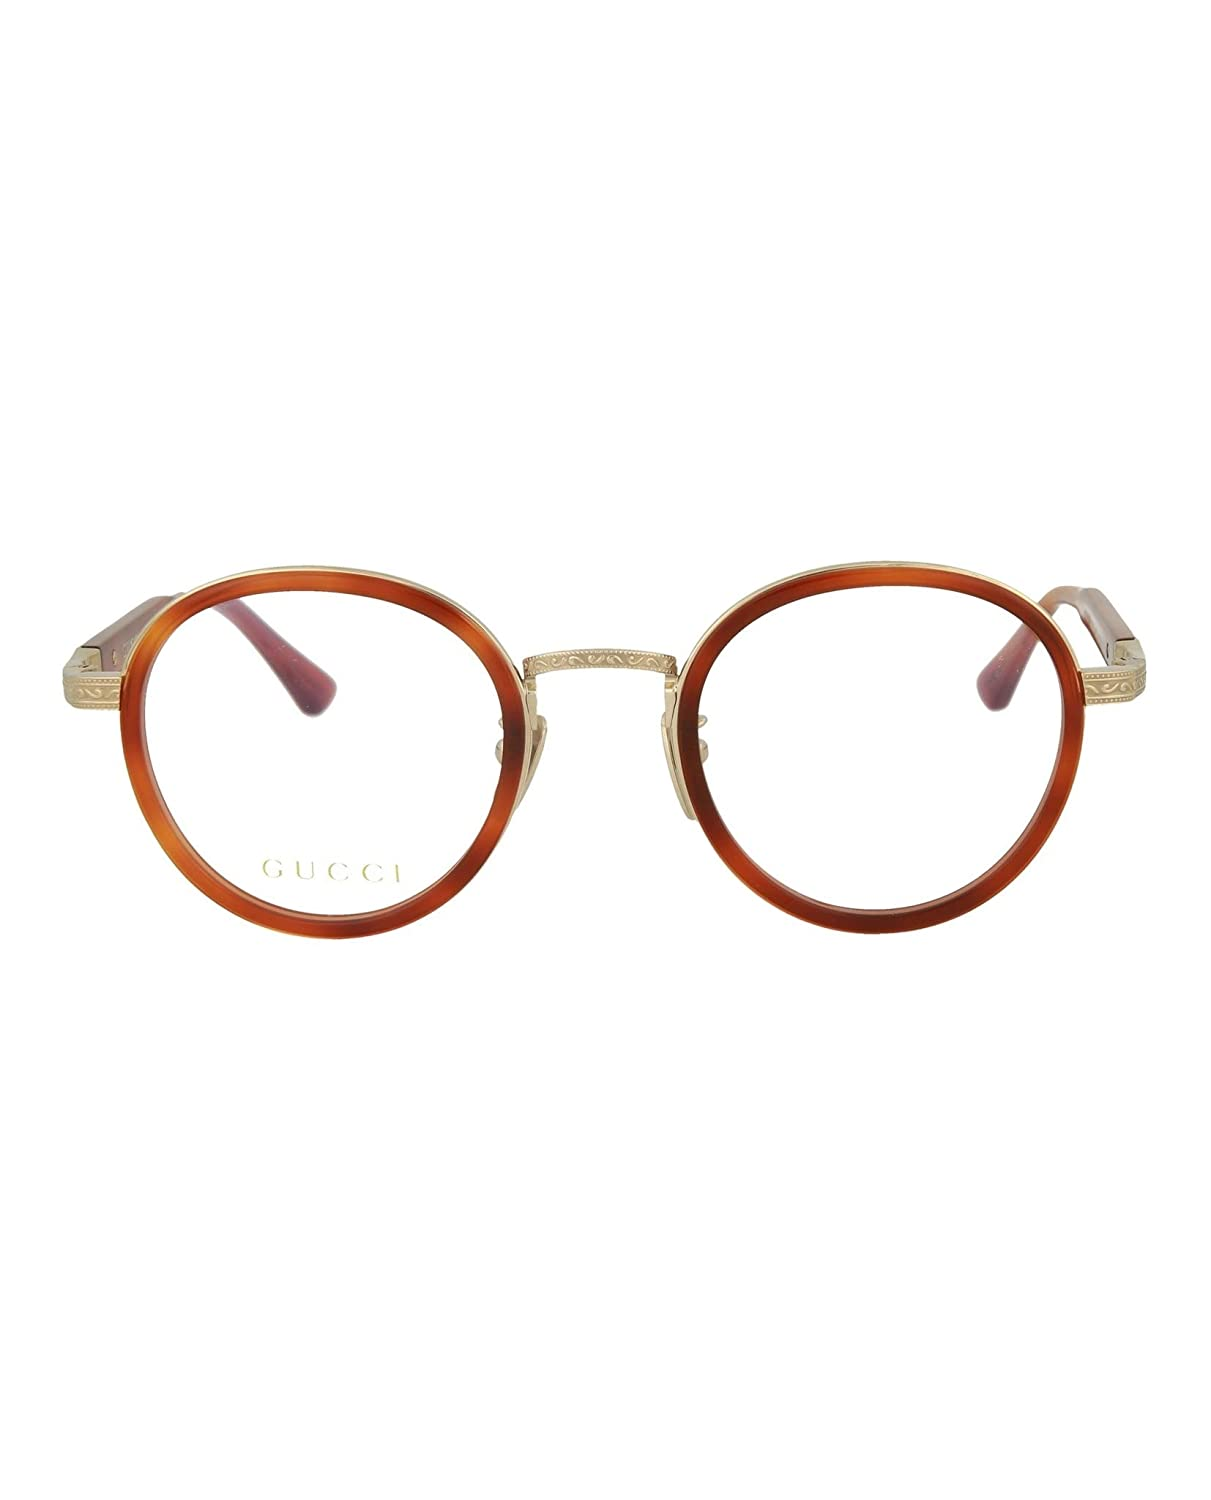 2035d217a9 Amazon.com  Gucci Mens Round Oval Optical Frames GG0067O-30001063-001   Clothing